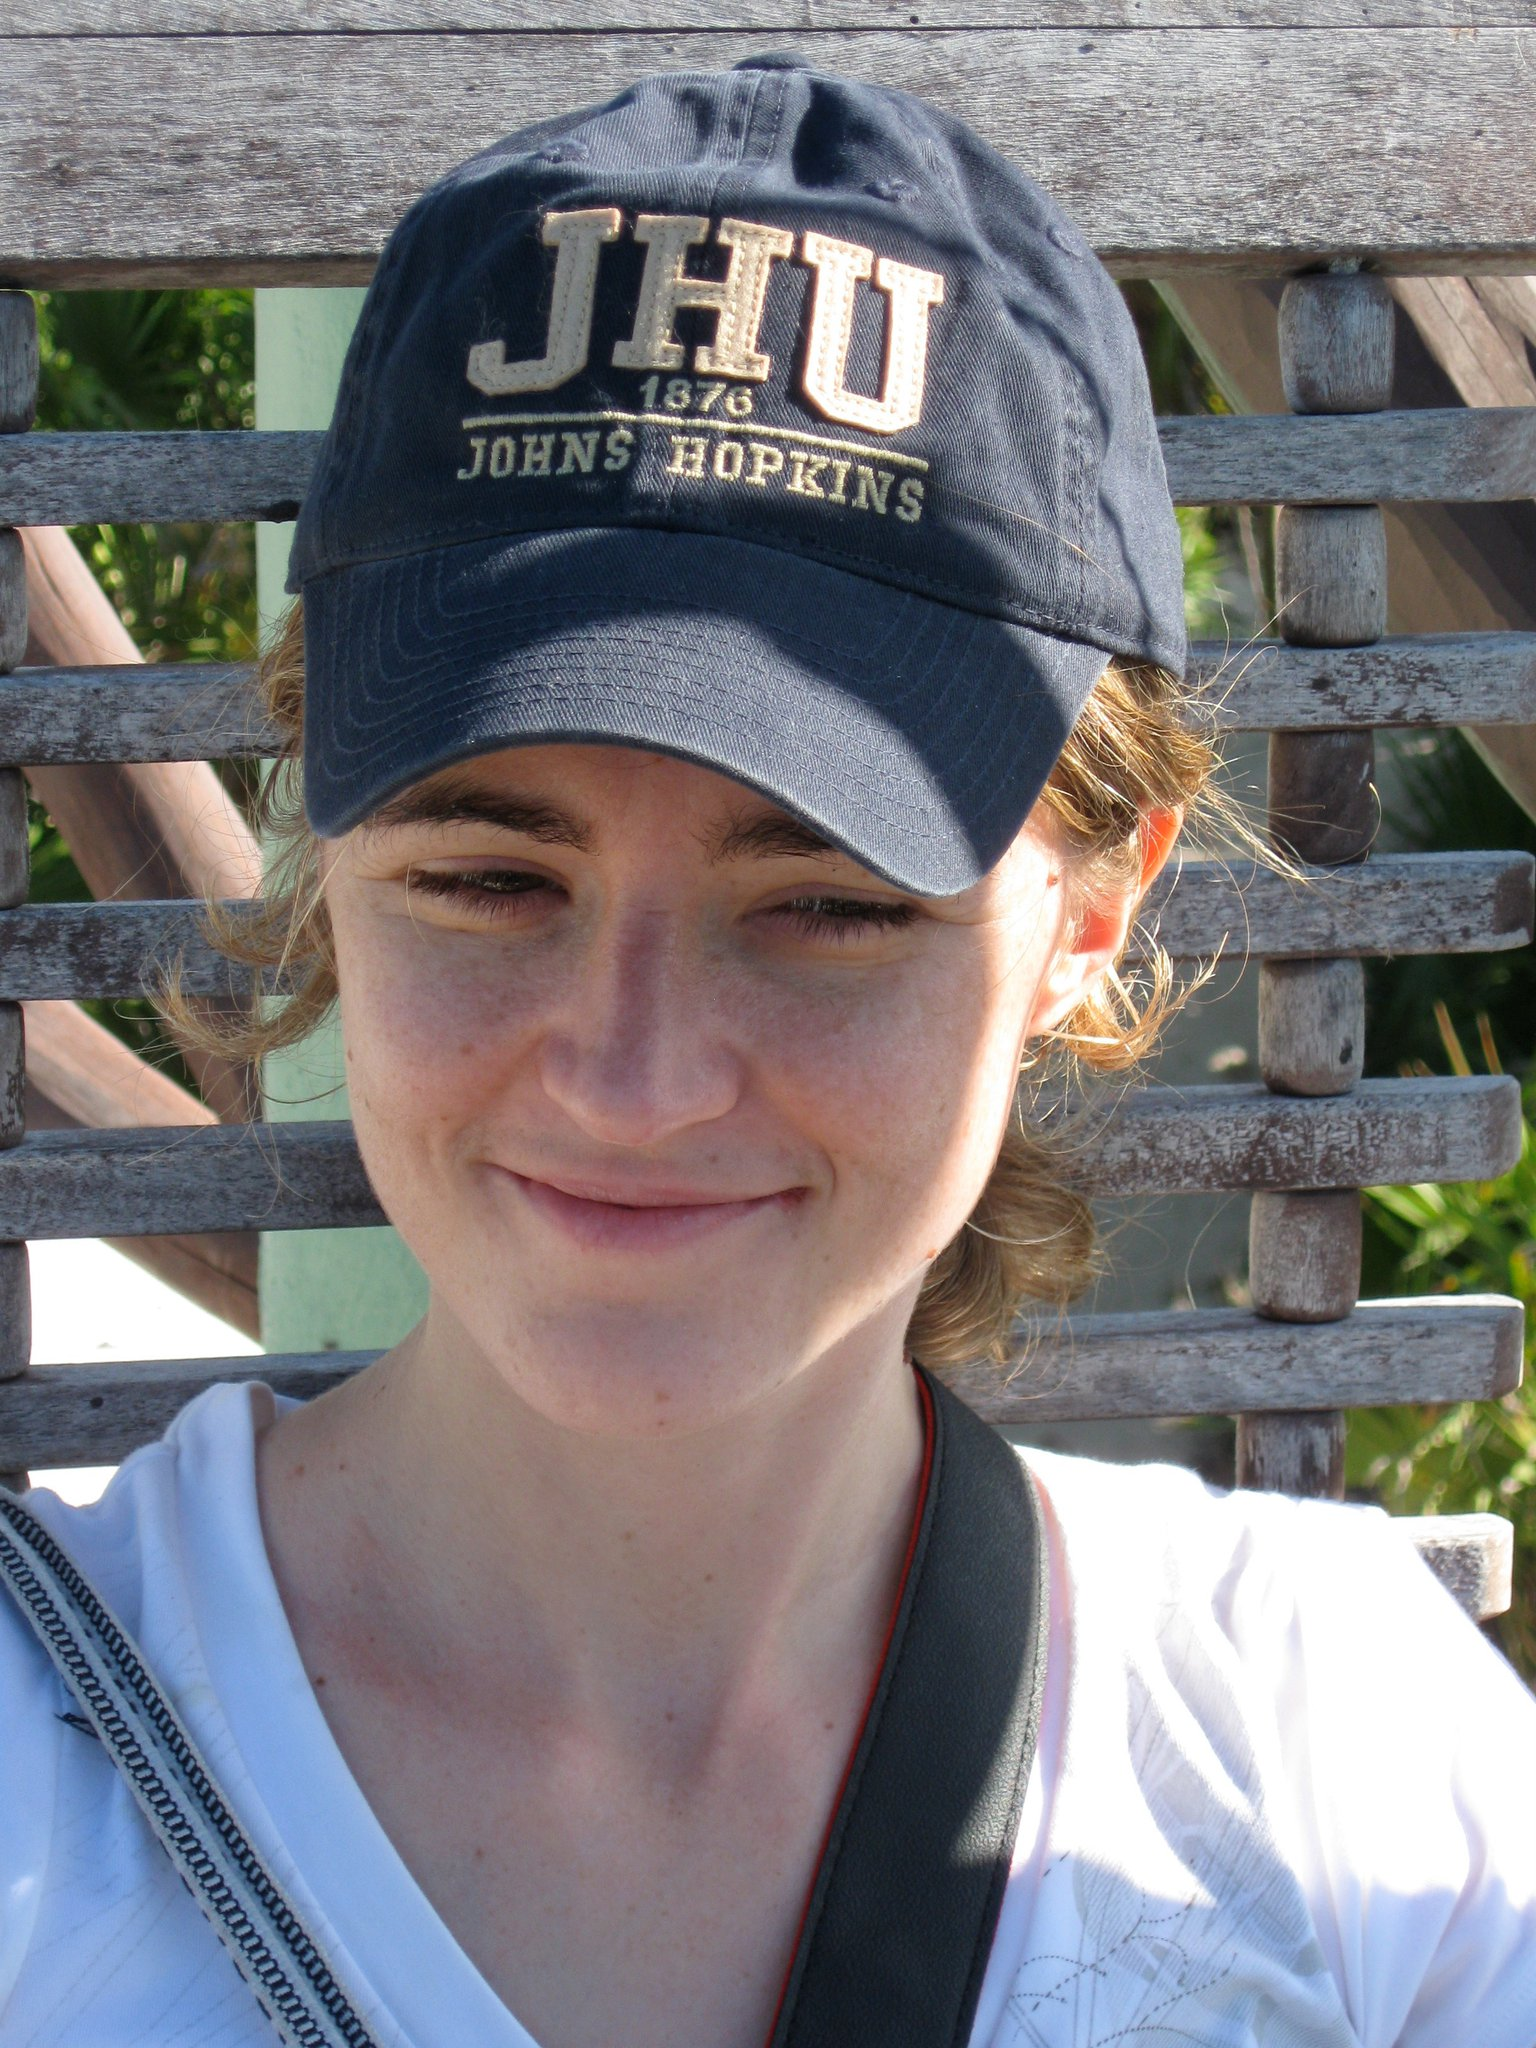 Marianna Bergamaschi Ganapini is an Assistant Professor in the Philosophy Department at Union College (NY). She got her PhD from Johns Hopkins University in 2017. She works in Epistemology and Philosophy of Mind.